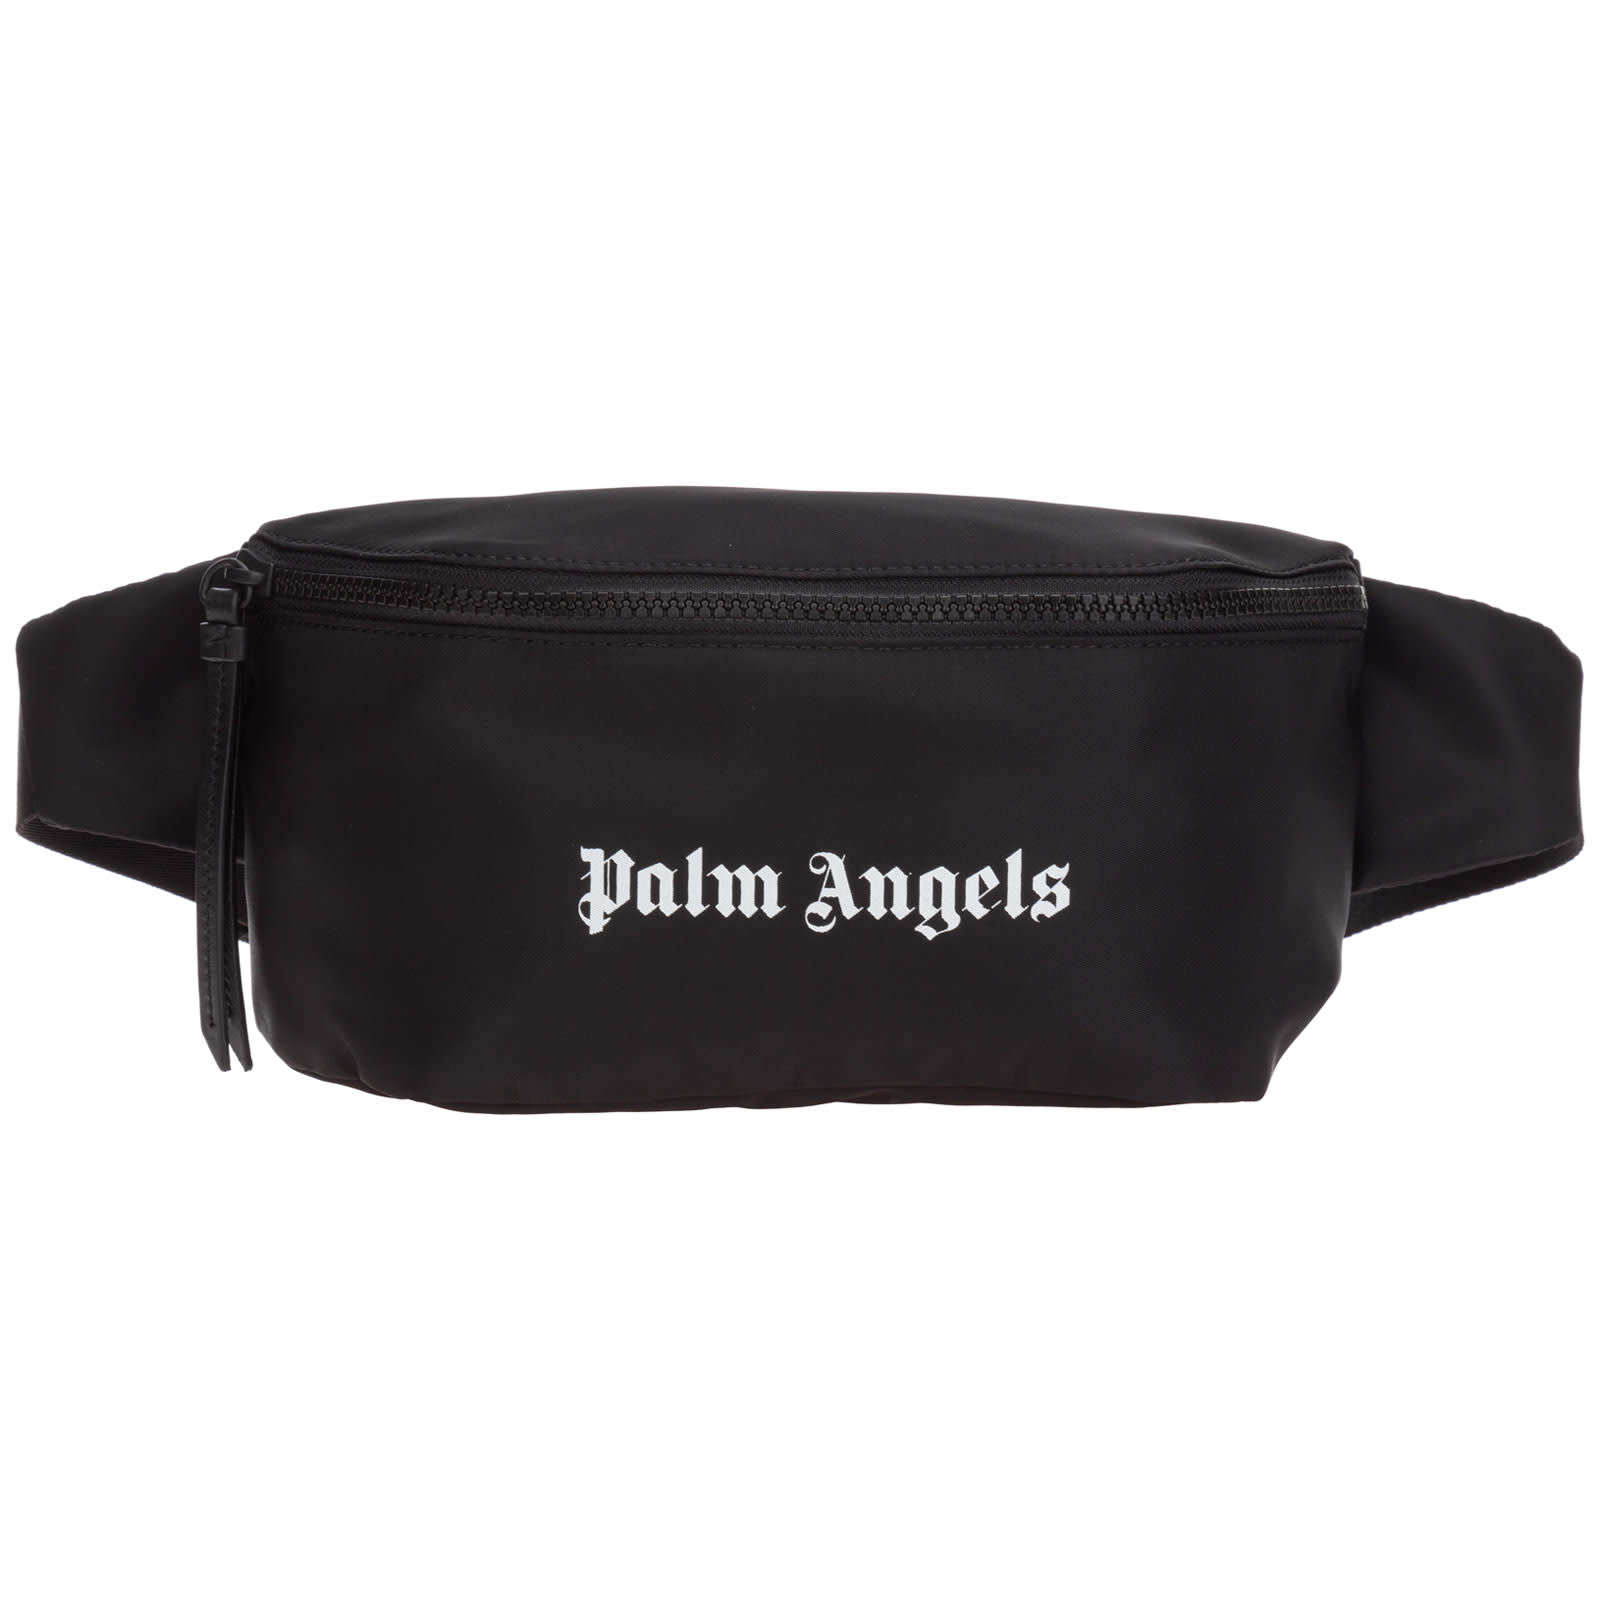 Palm Angels FANNY BUM BAG